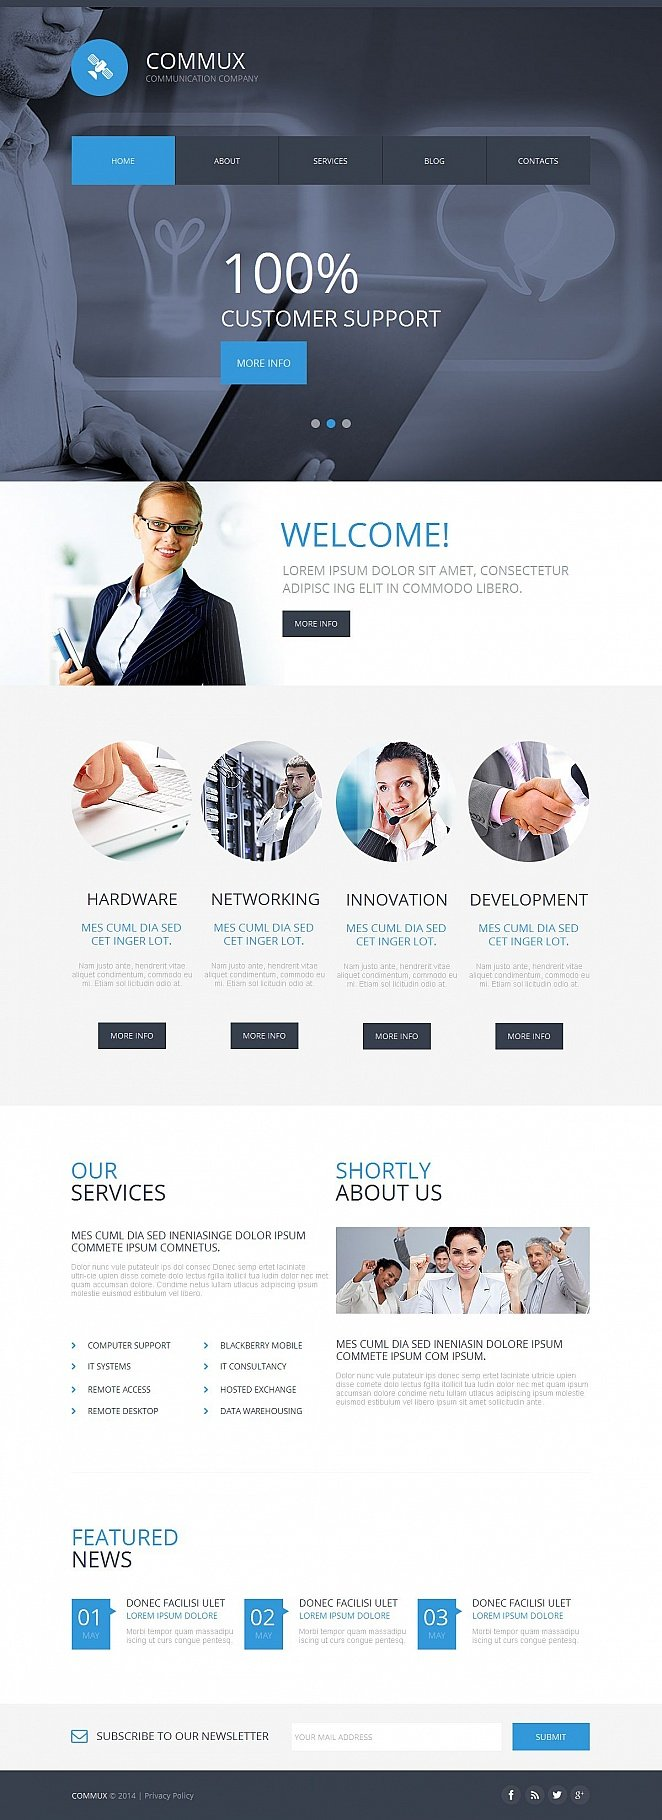 Business Communication Web Tempalte with Huge Header Slider - image